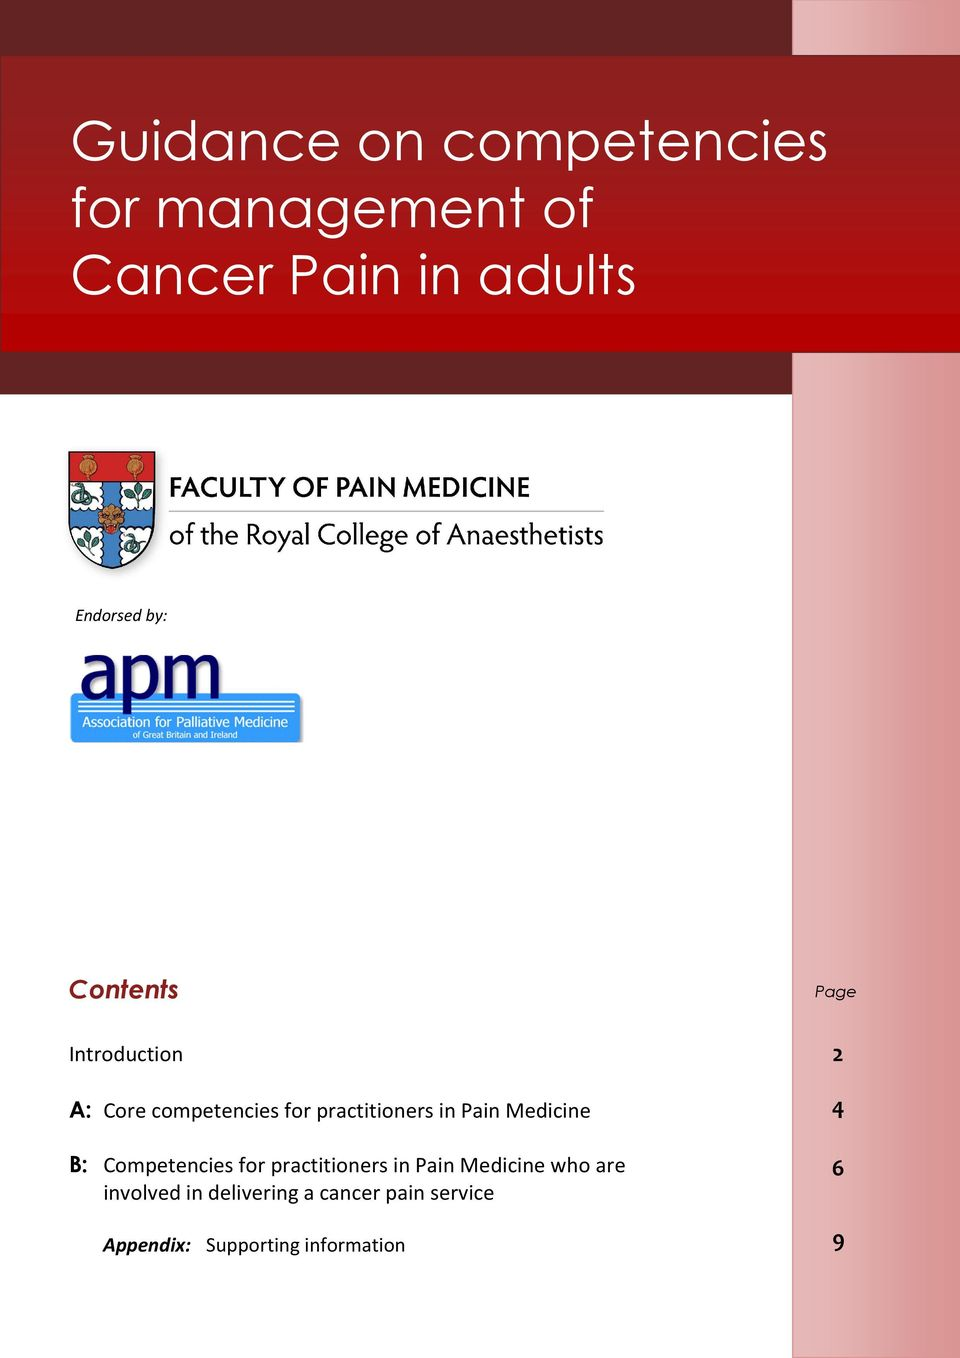 Medicine B: Competencies for practitioners in Pain Medicine who are involved